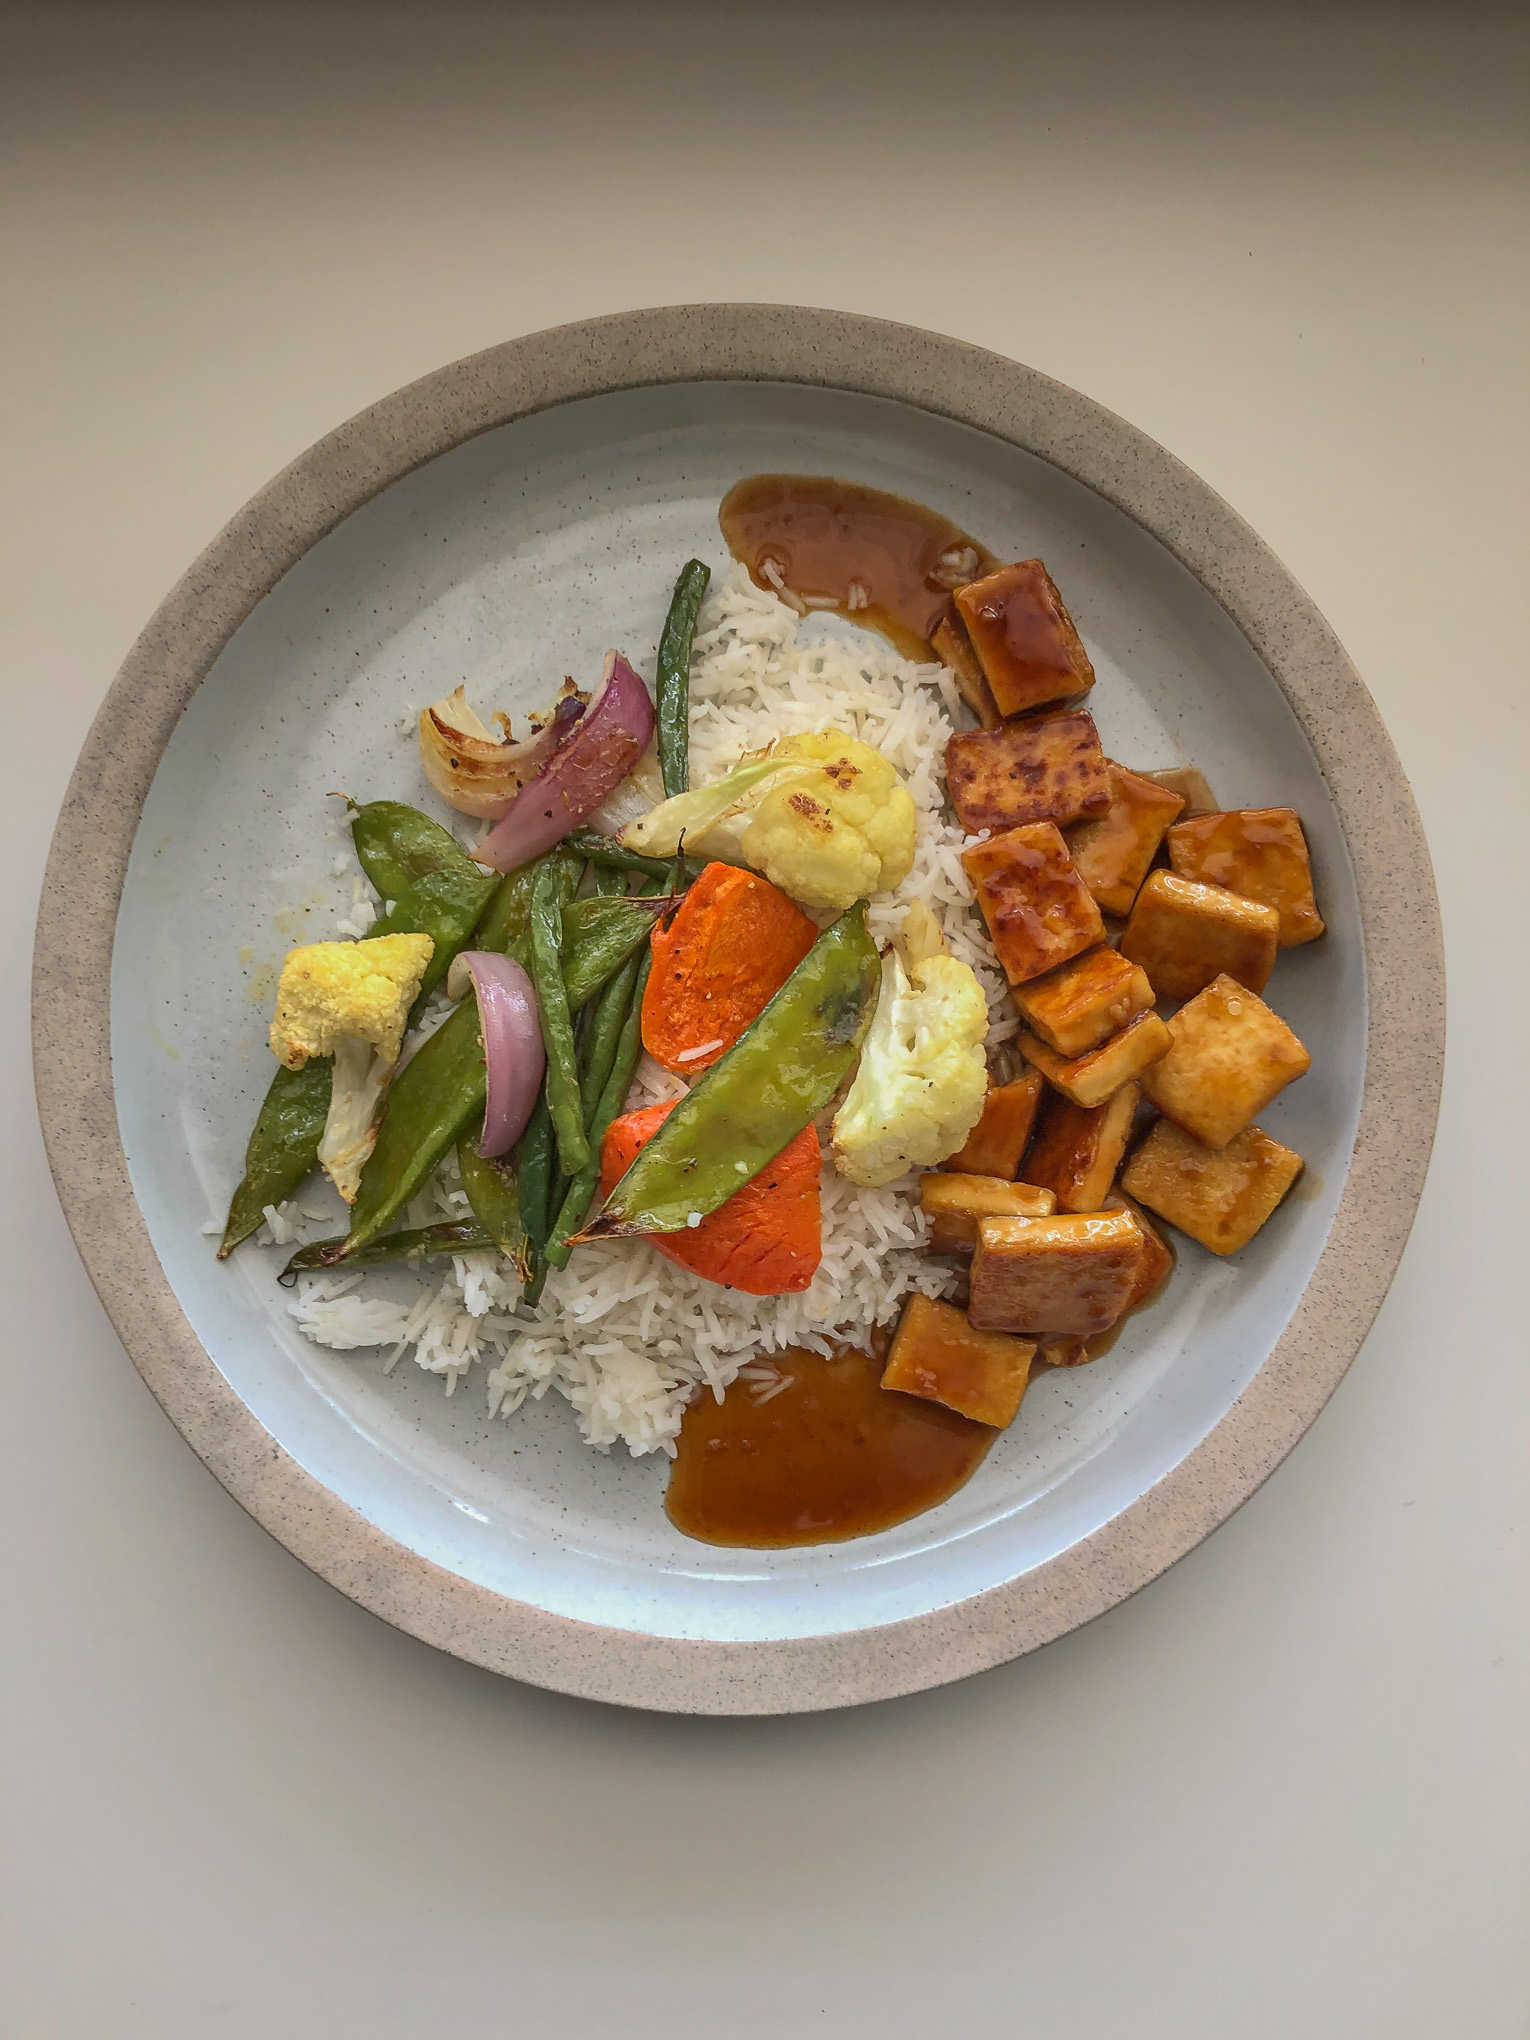 Tofu, veggies and rice on a plate